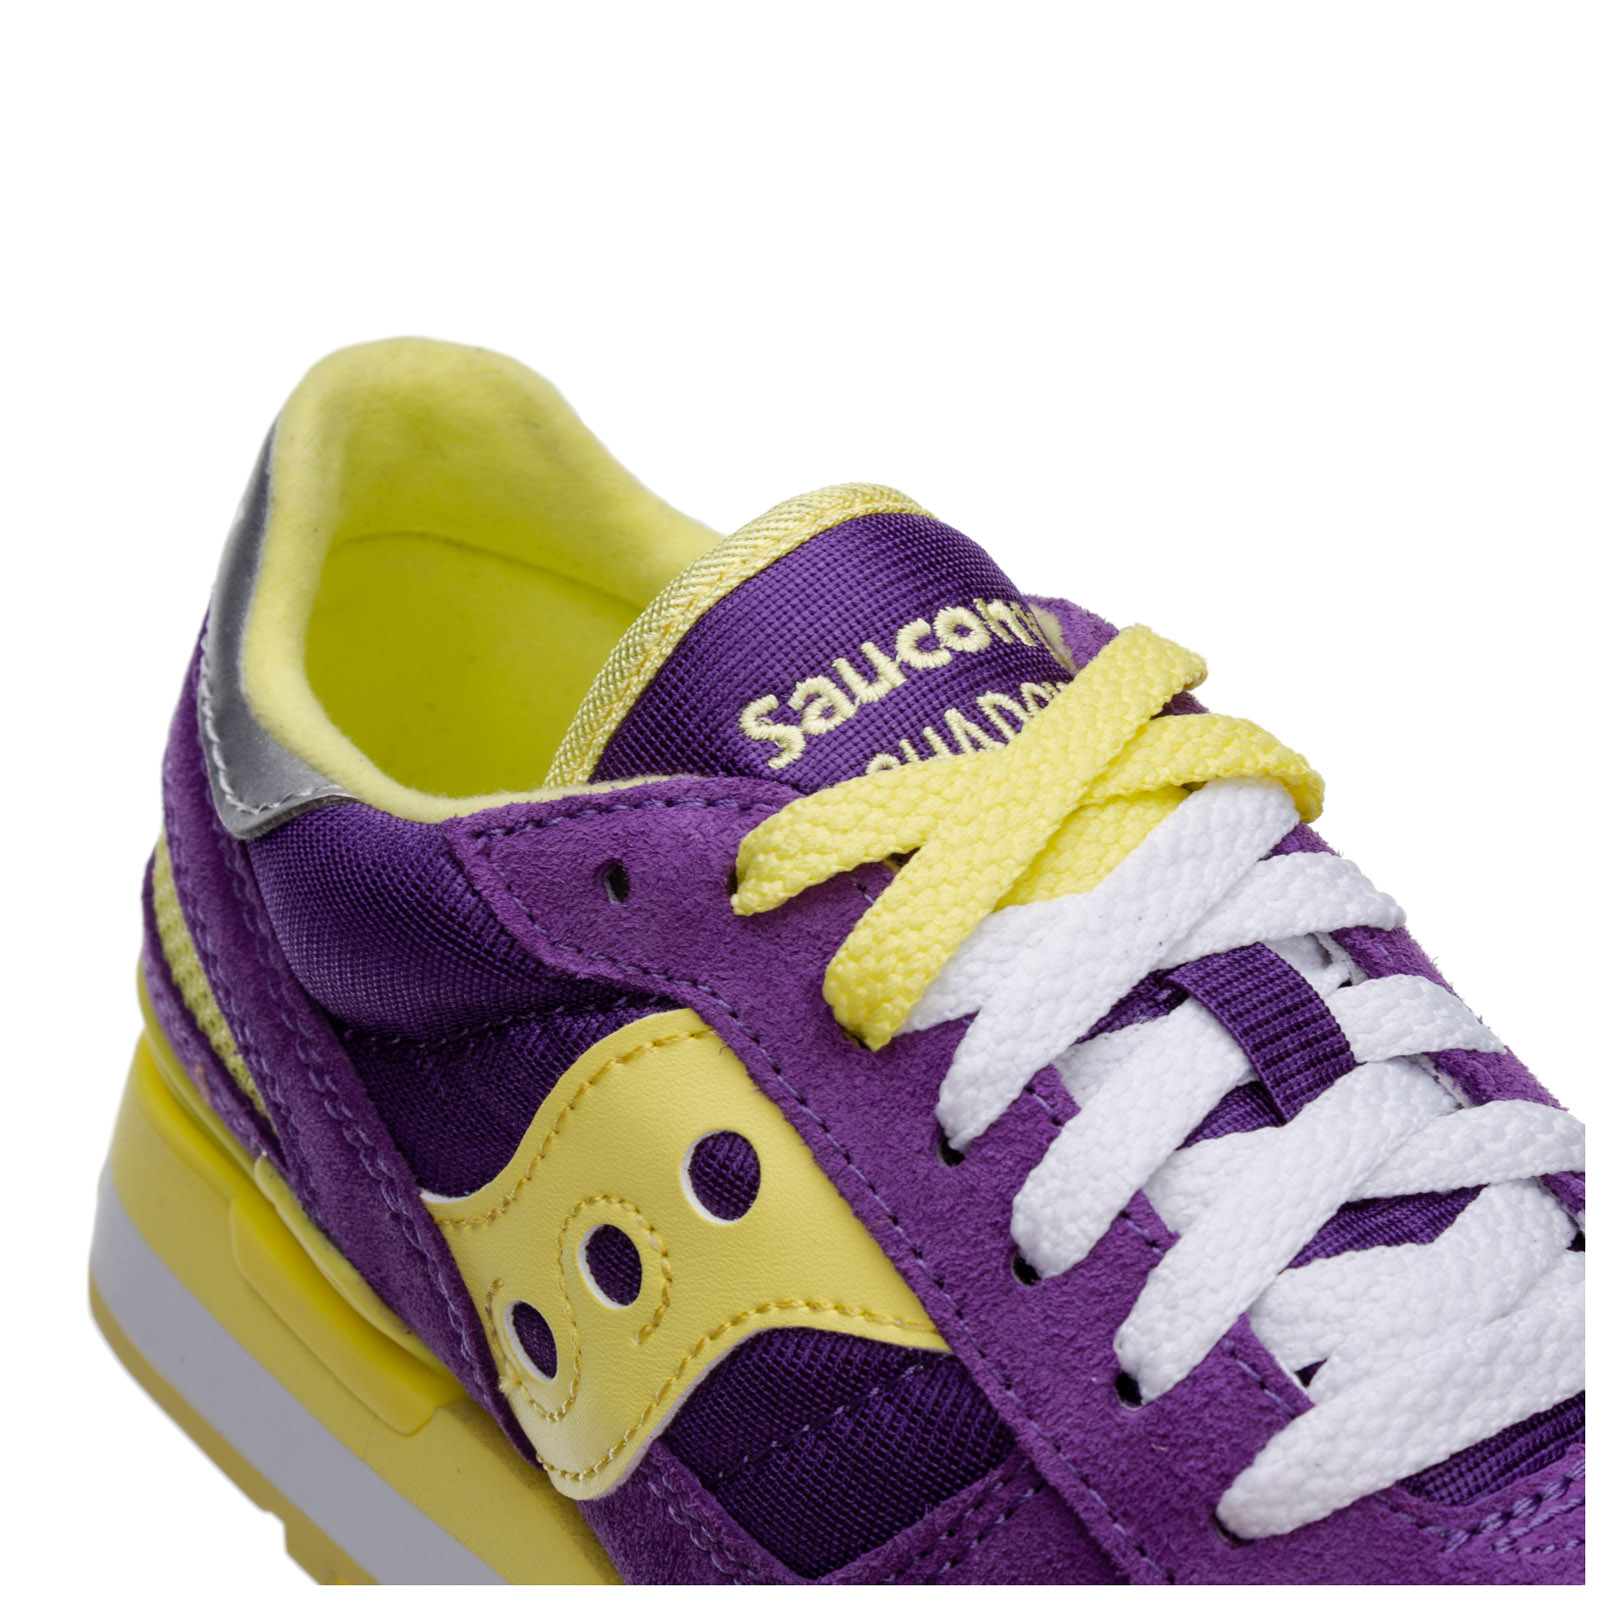 Women's shoes suede trainers sneakers shadow original